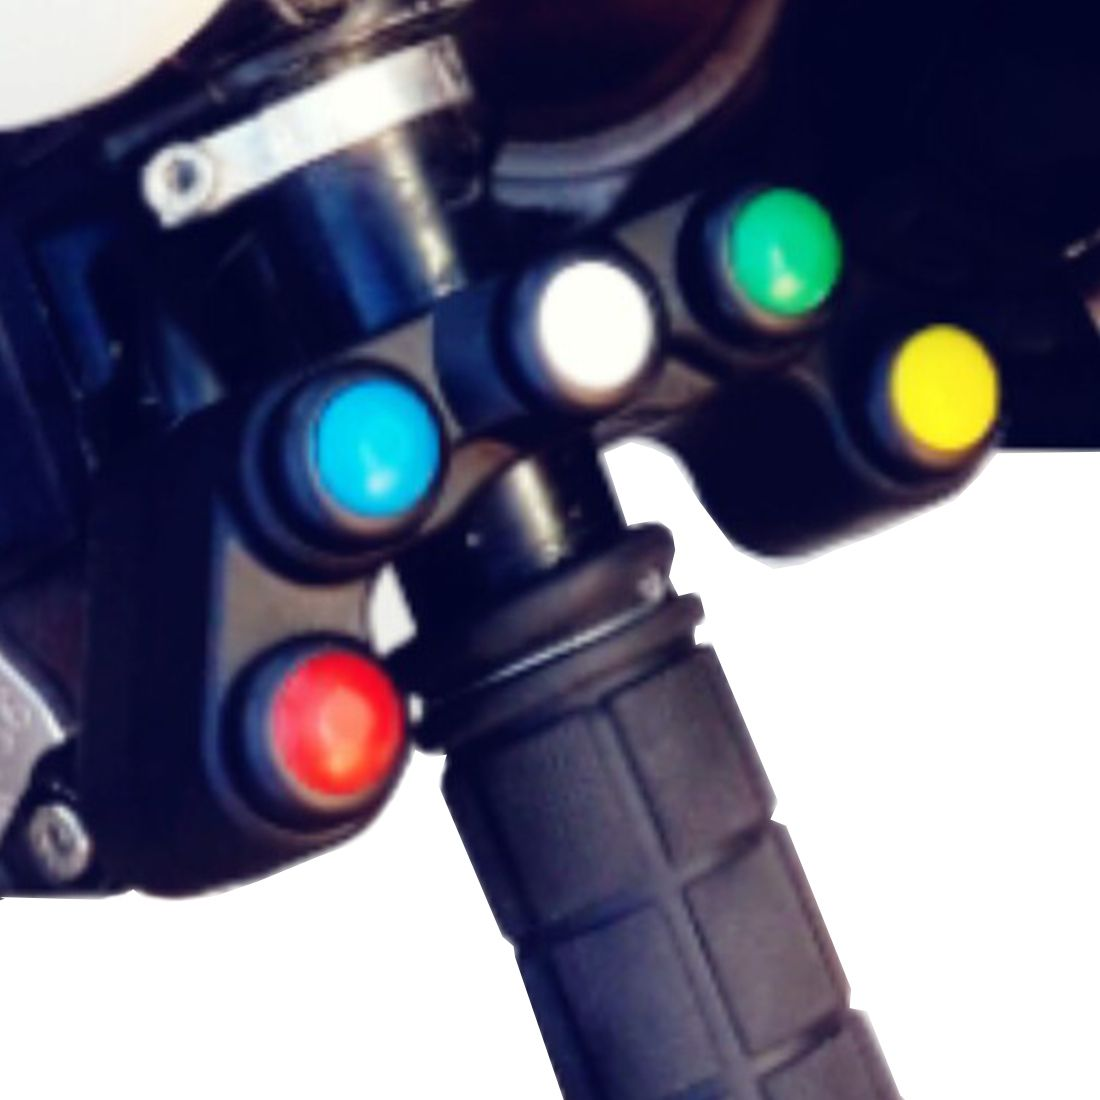 Dewtreetali new hot 5 button Motorcycle switch/switches button 7/8 22mm handlebar /lights /on-off button waterproof